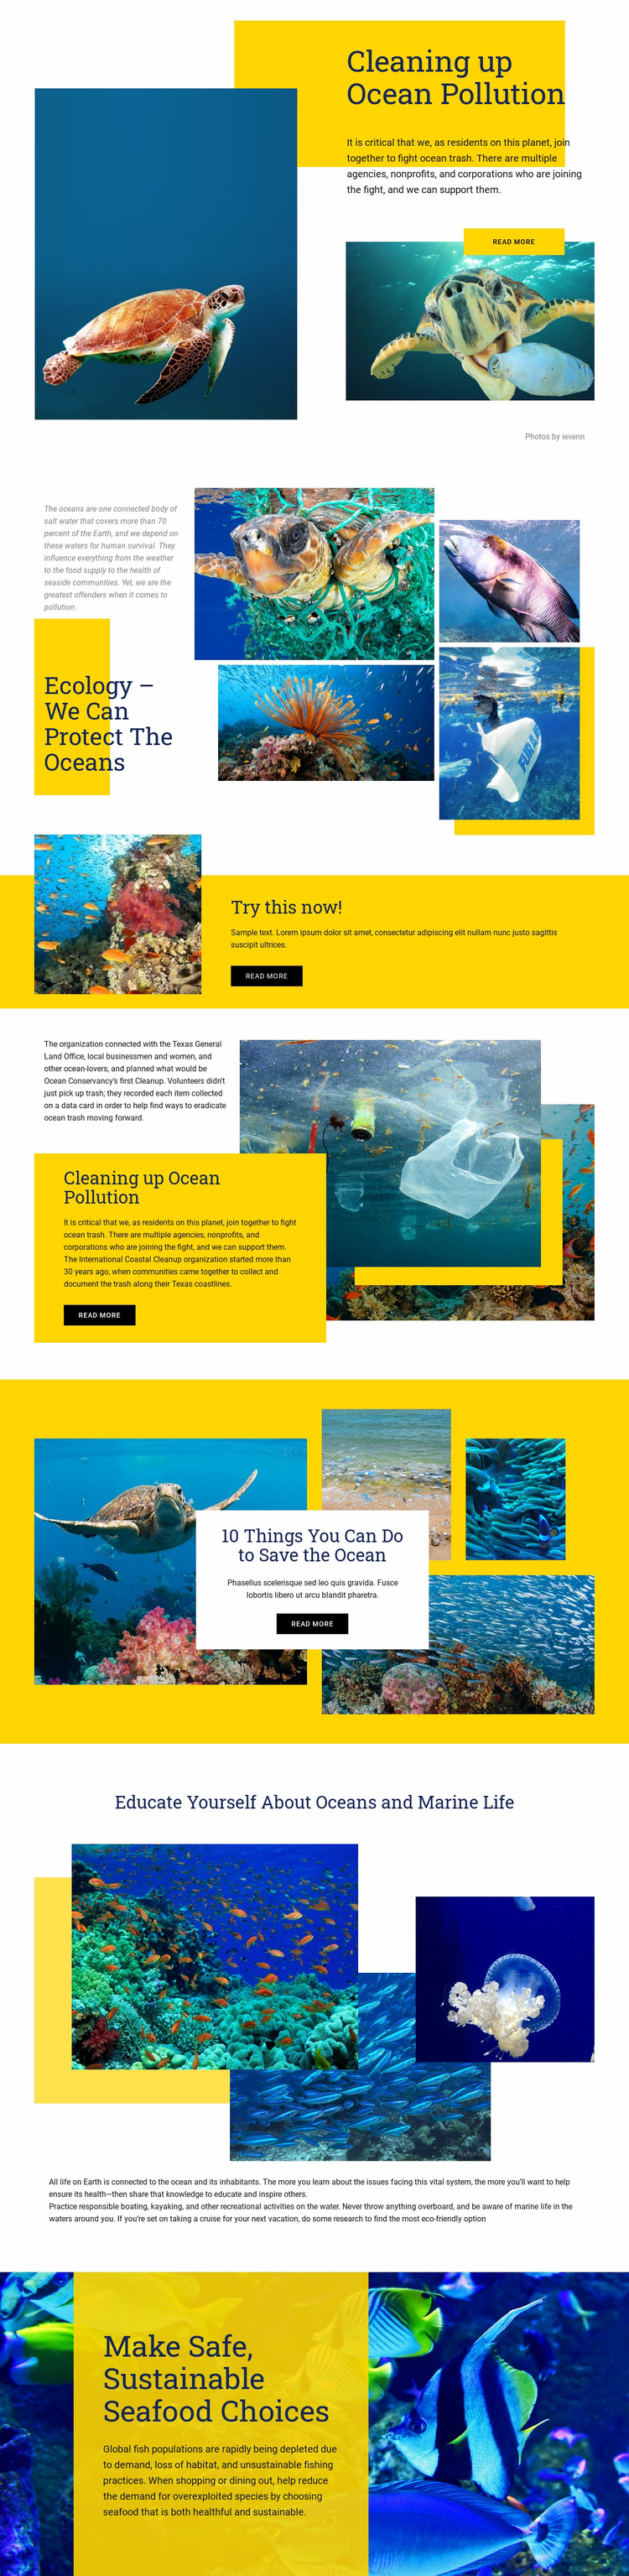 Protect The Oceans Web Page Designer